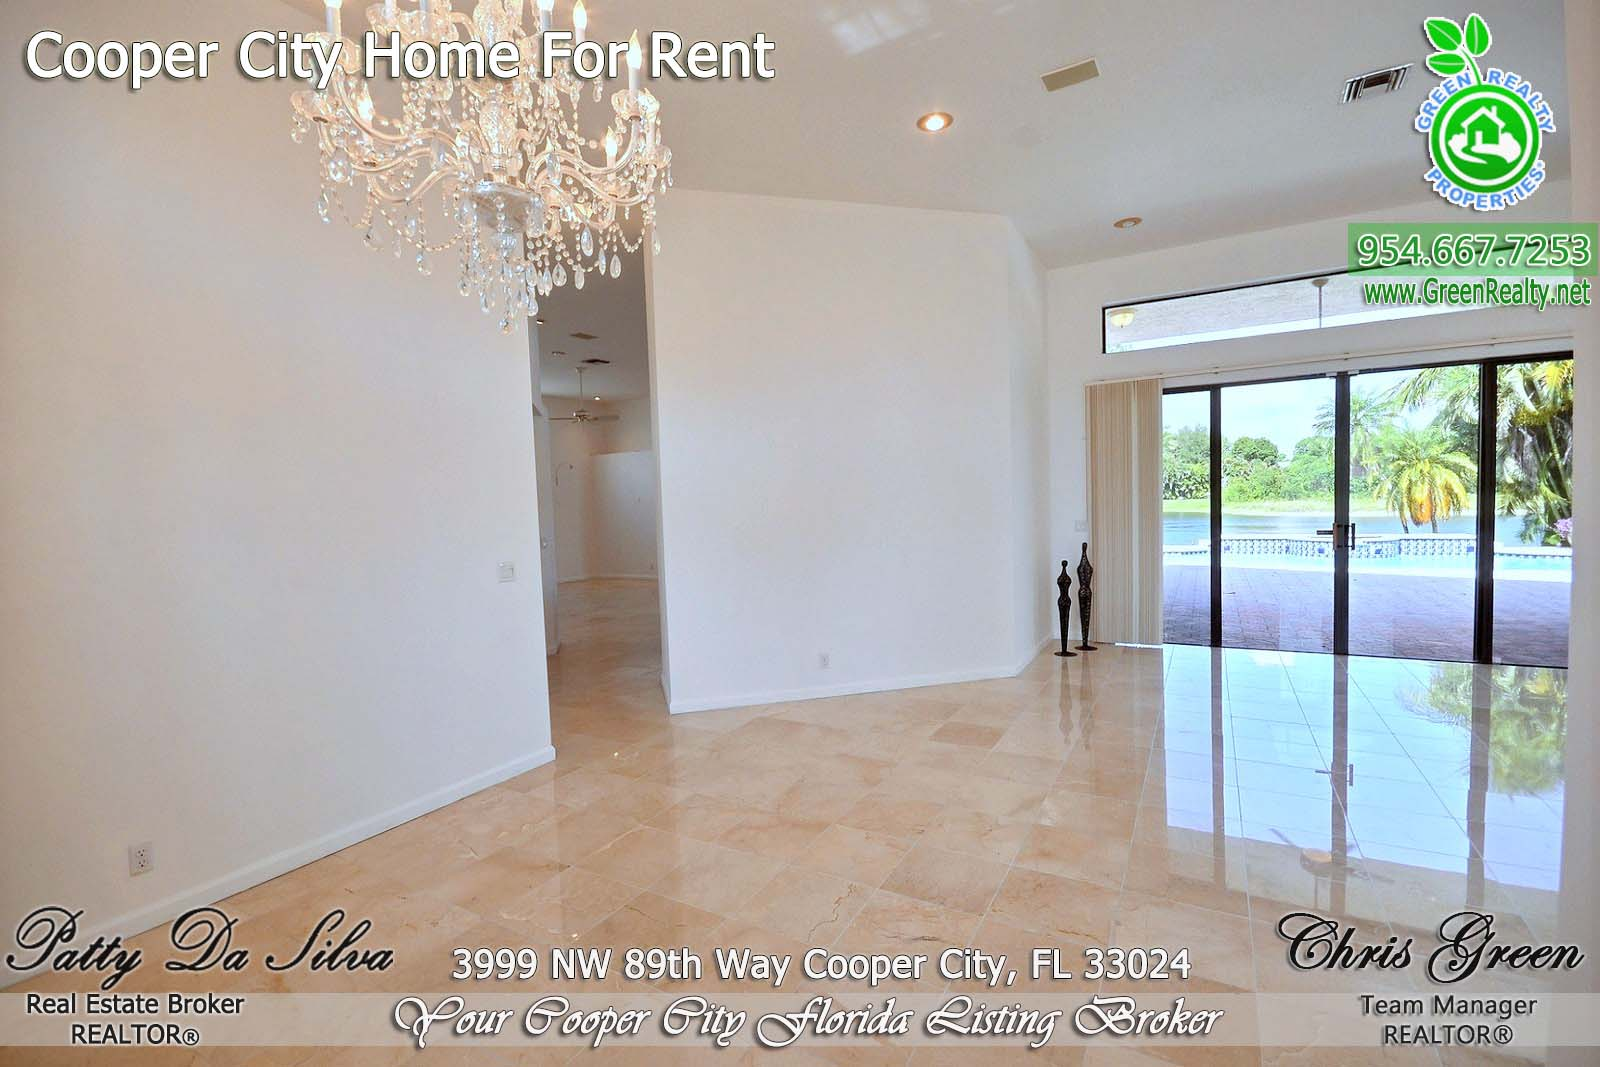 25 Homes For Rent in Cooper City (4)